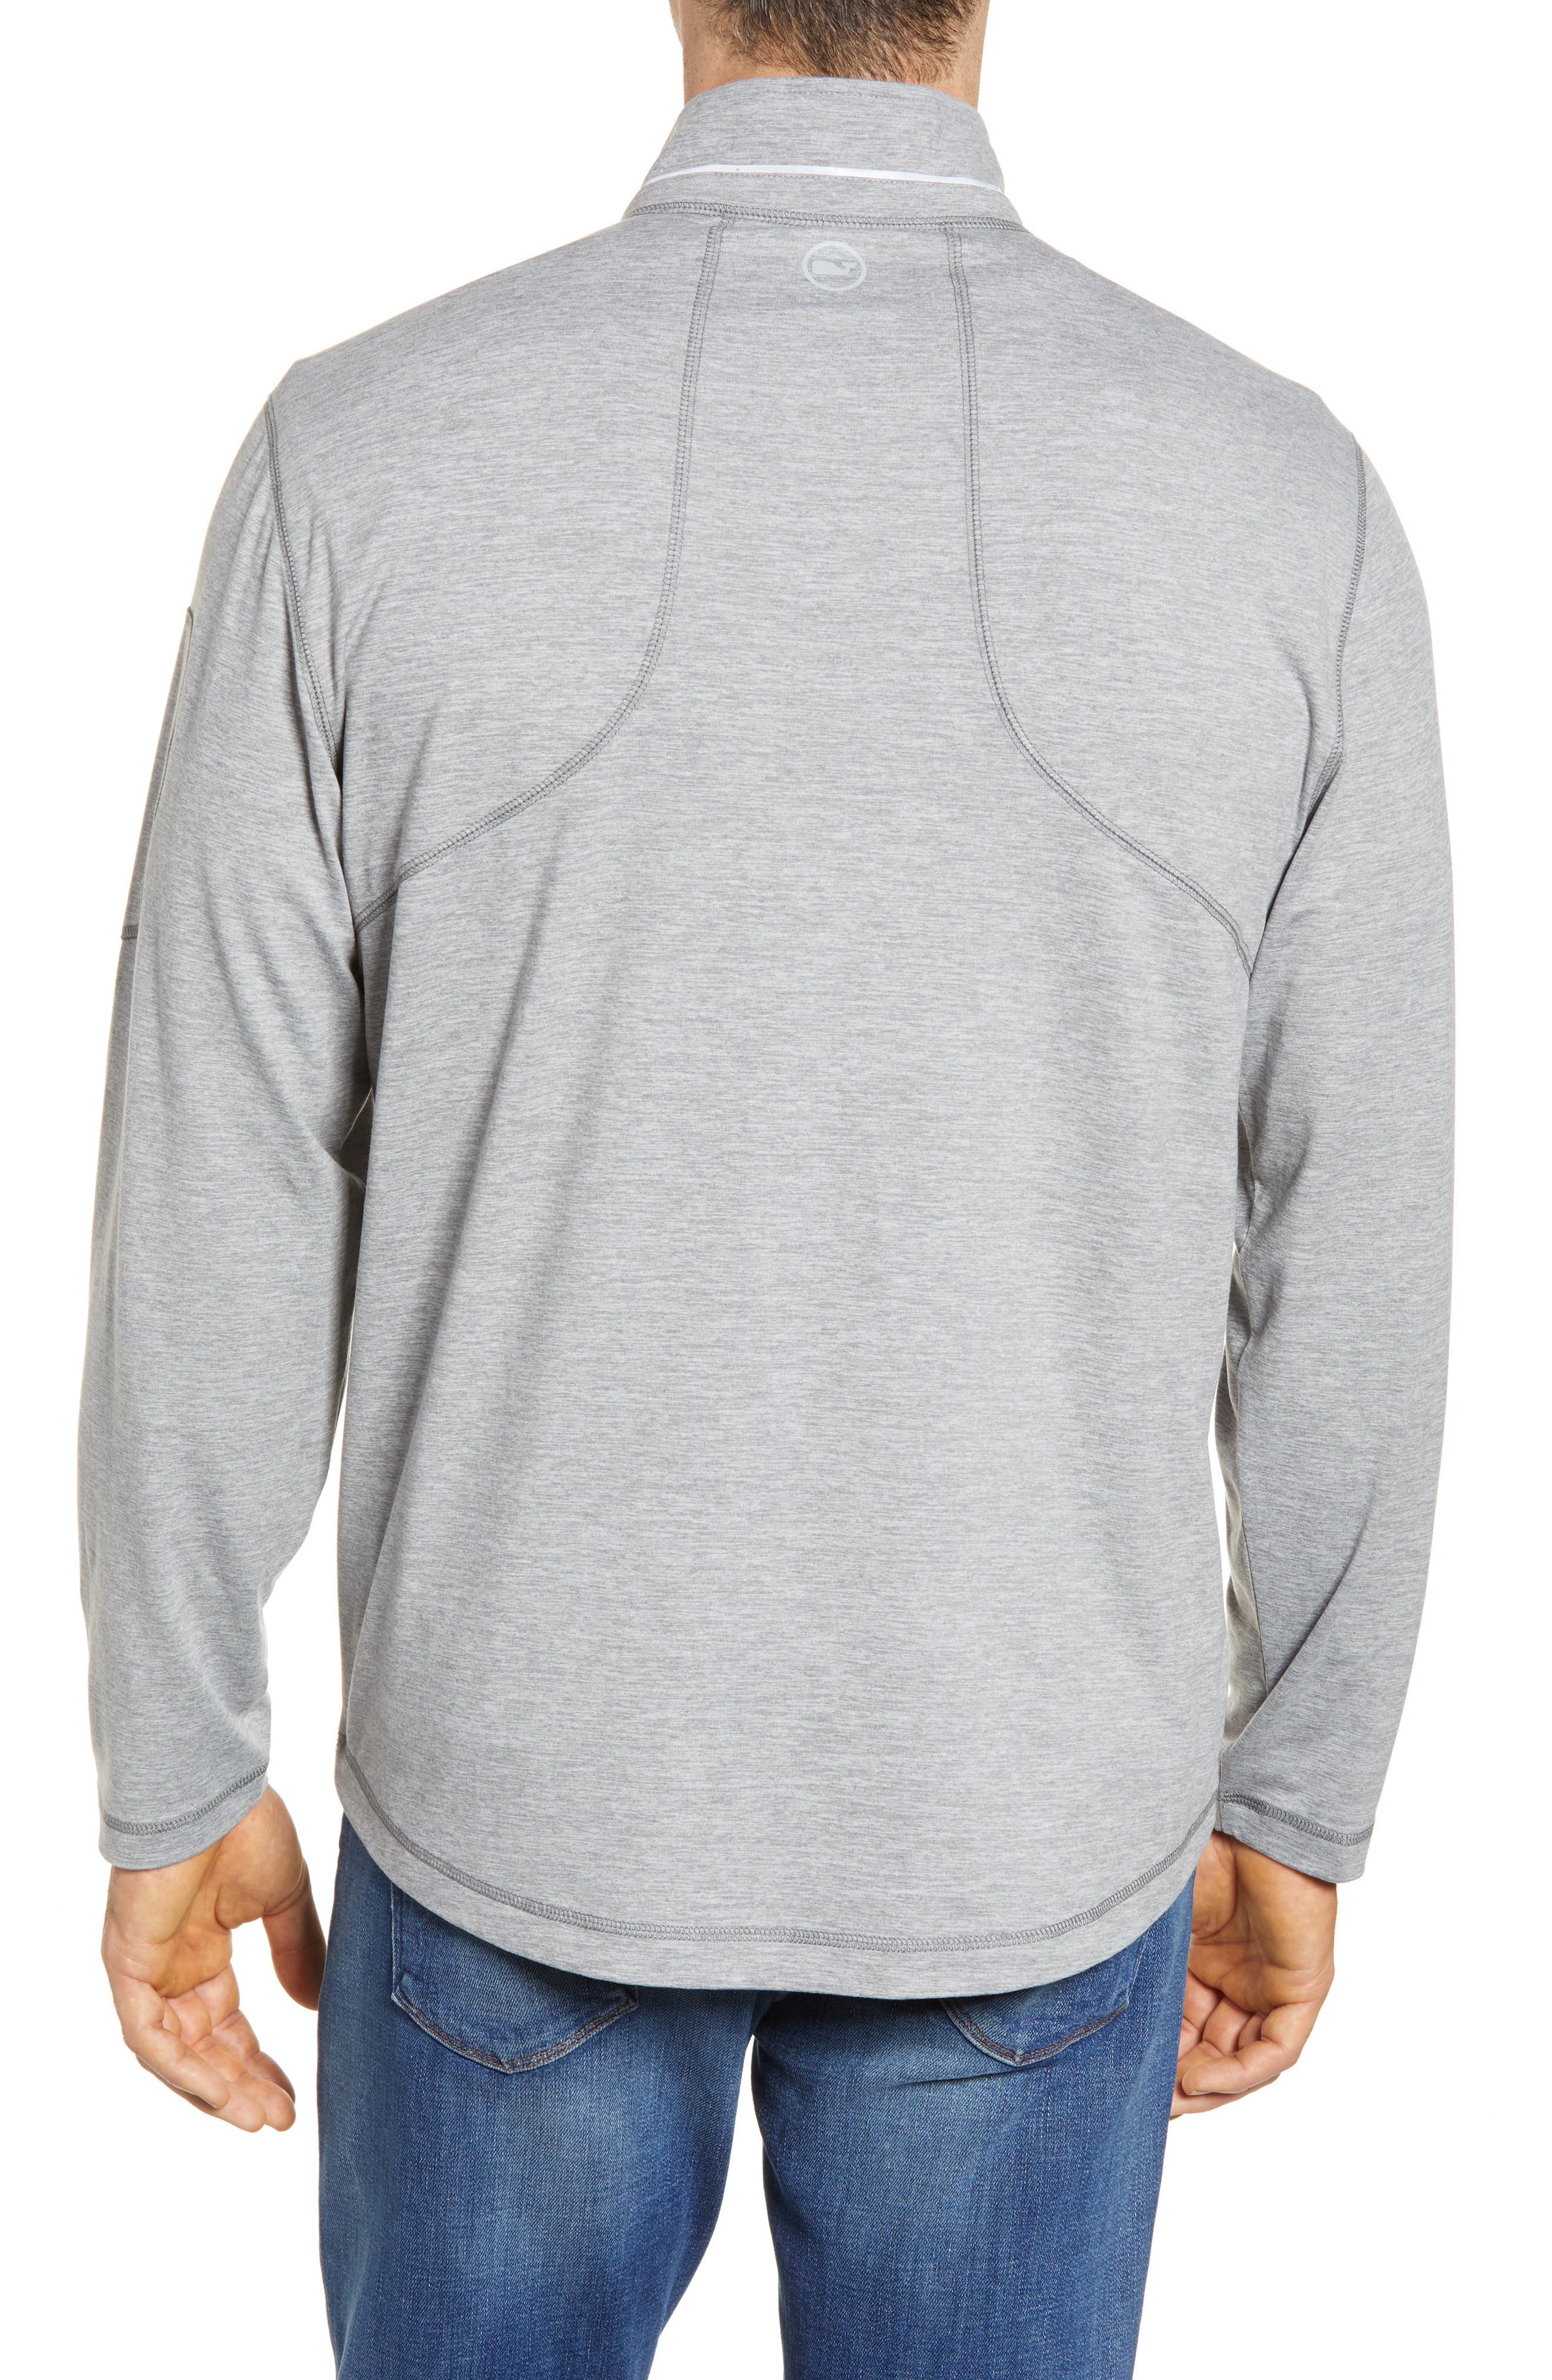 Performance Half Zip Pullover,                             Alternate thumbnail 2, color,                             Gray Heather